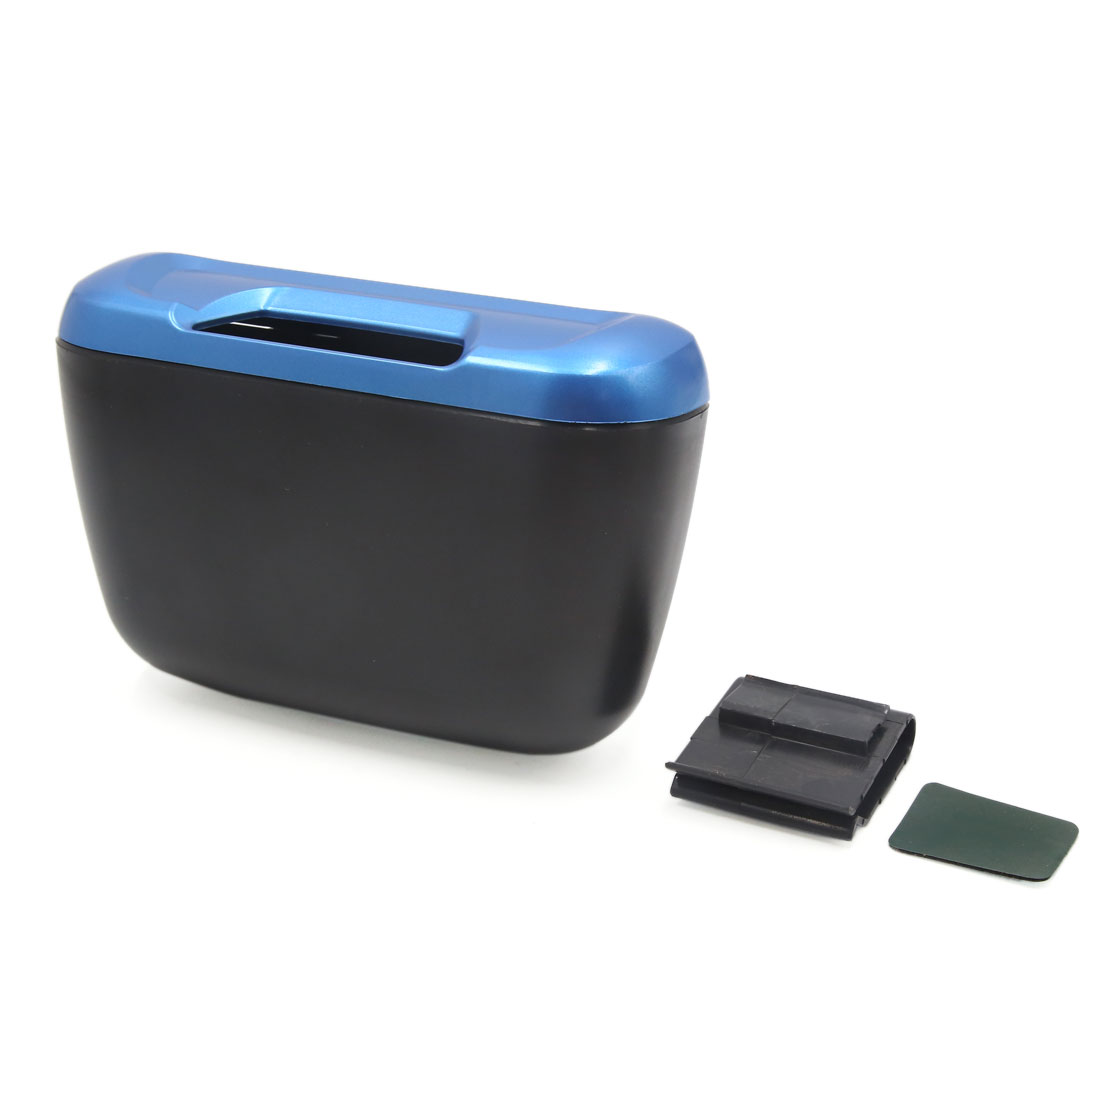 Vehicle Car Blue Trash Bin Rubbish Can Garbage Dust Case Holder Box - image 3 of 3